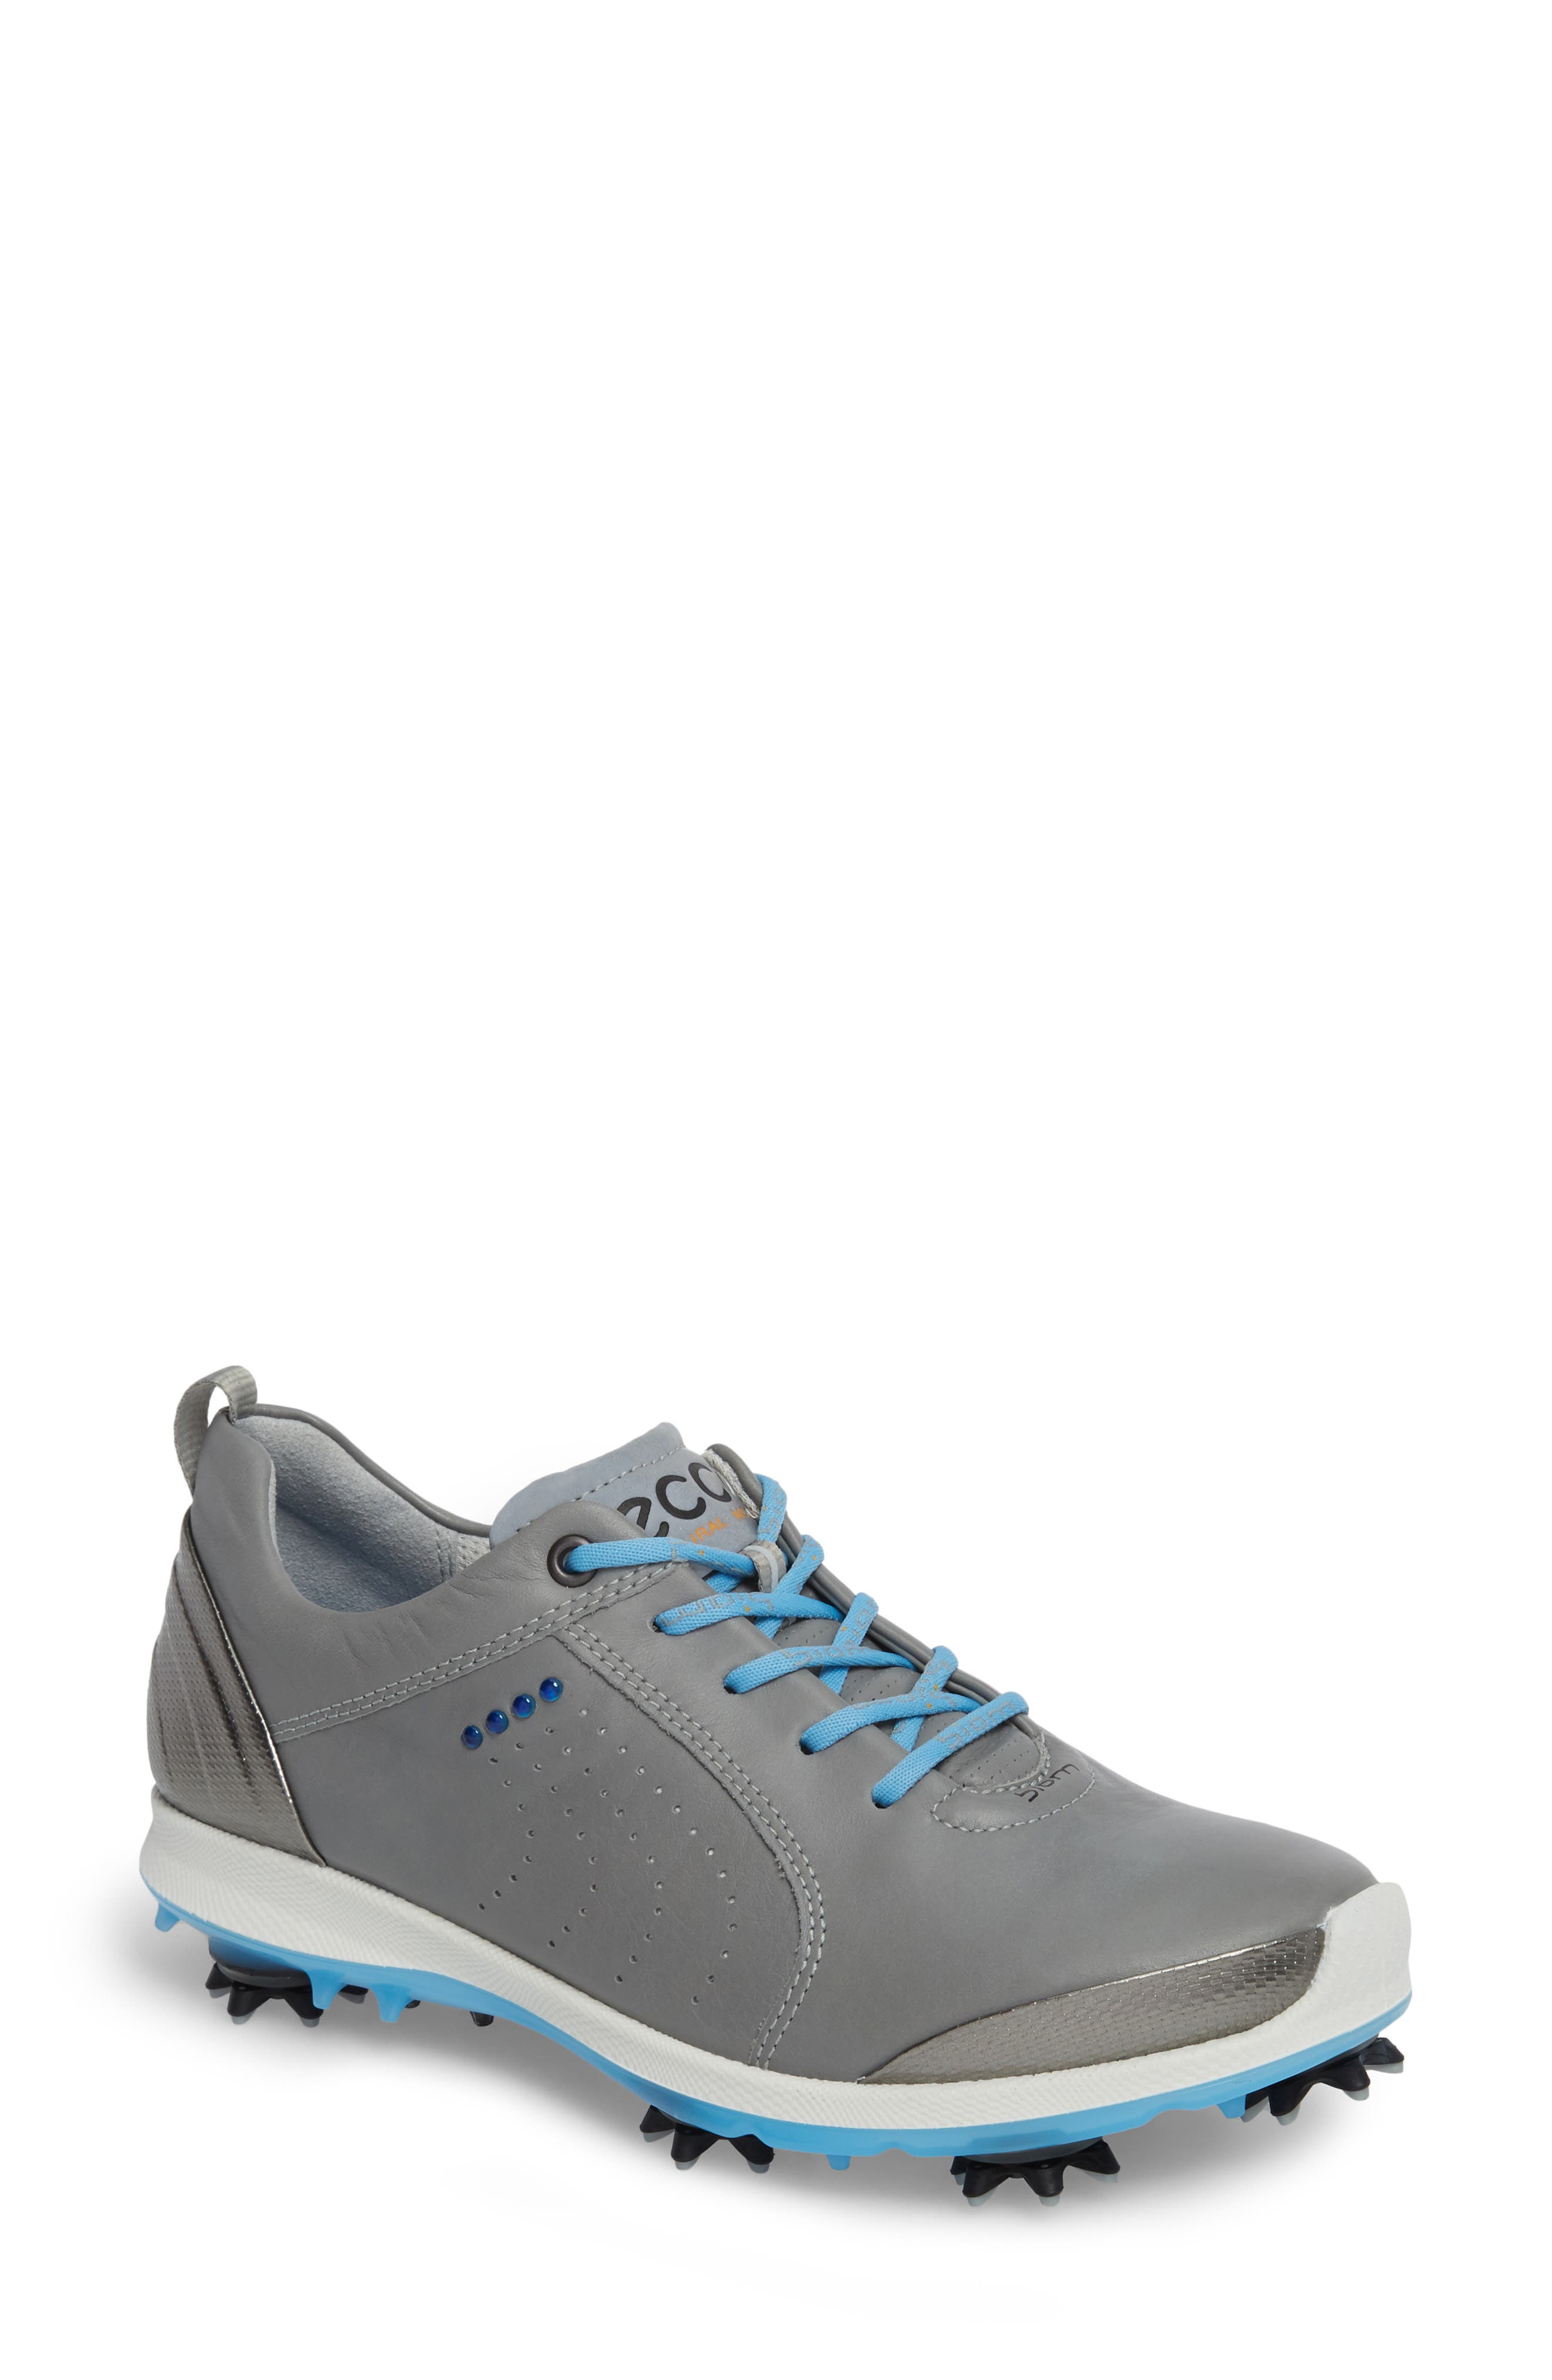 BIOM 2 Waterproof Golf Shoe,                             Main thumbnail 1, color,                             Wild Dove/ Sky Blue Leather